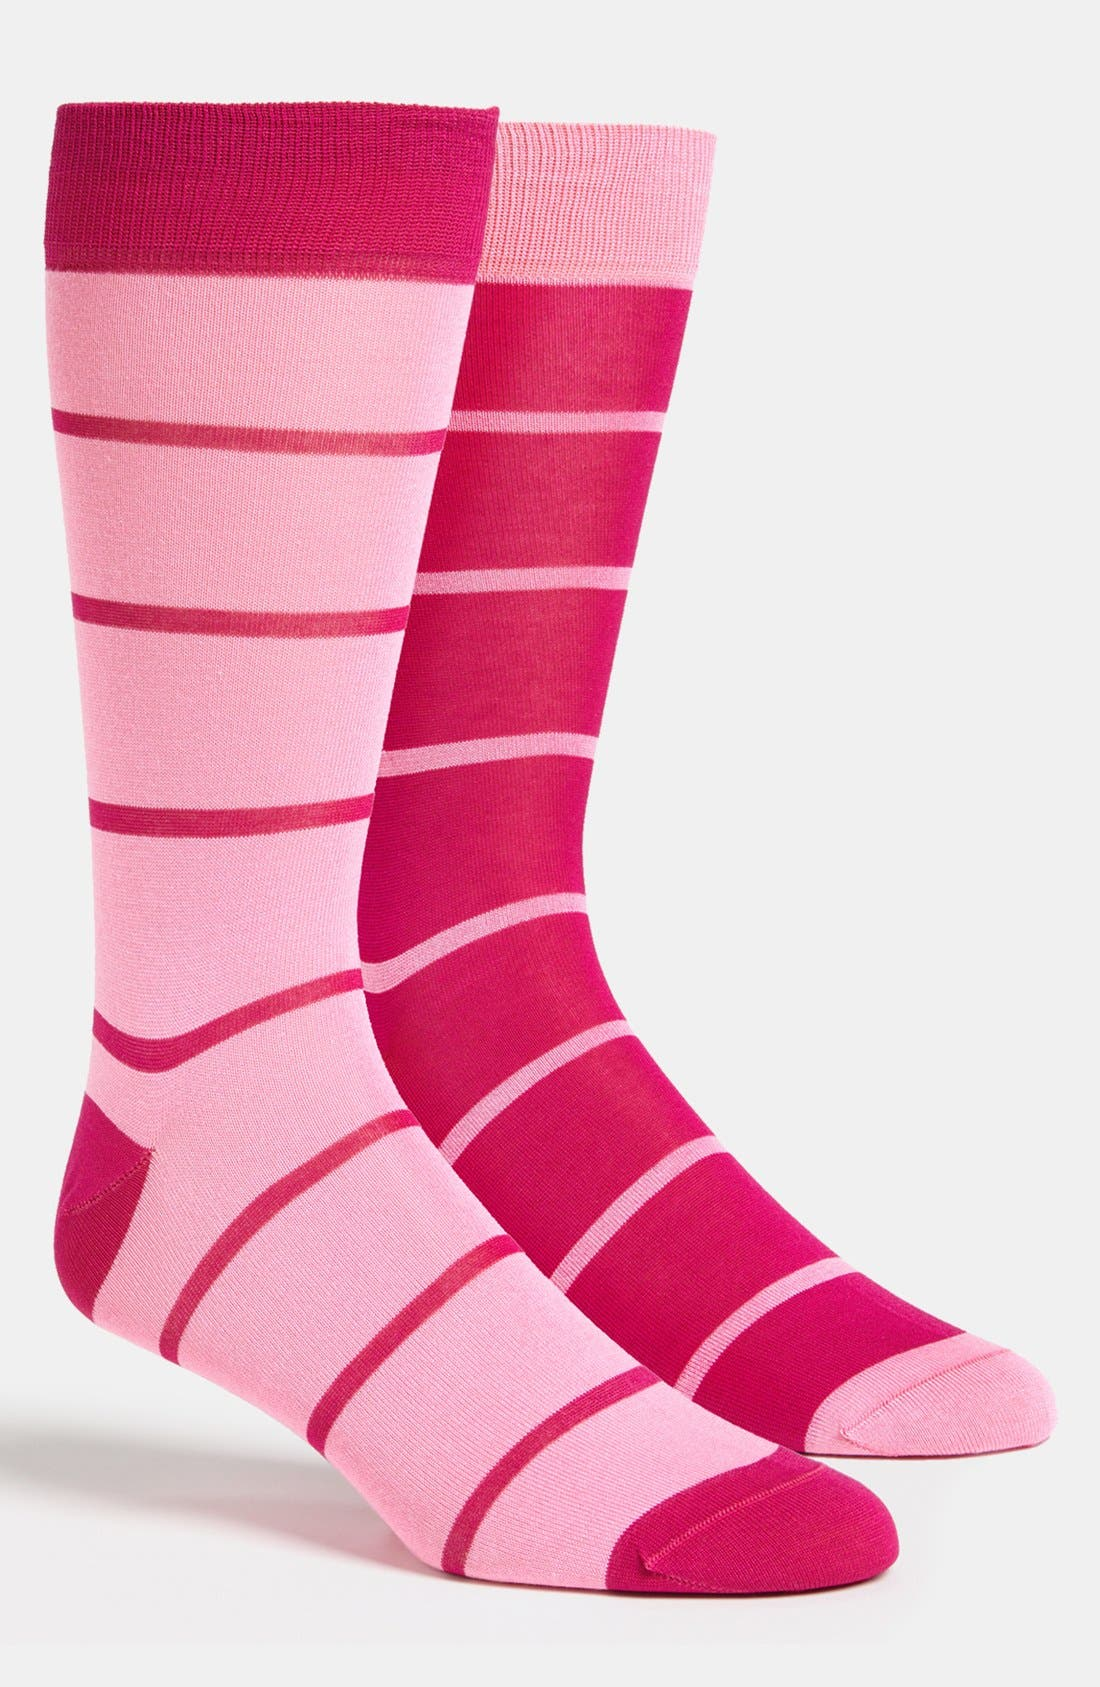 Alternate Image 1 Selected - Marcoliani 'Left & Right' Socks